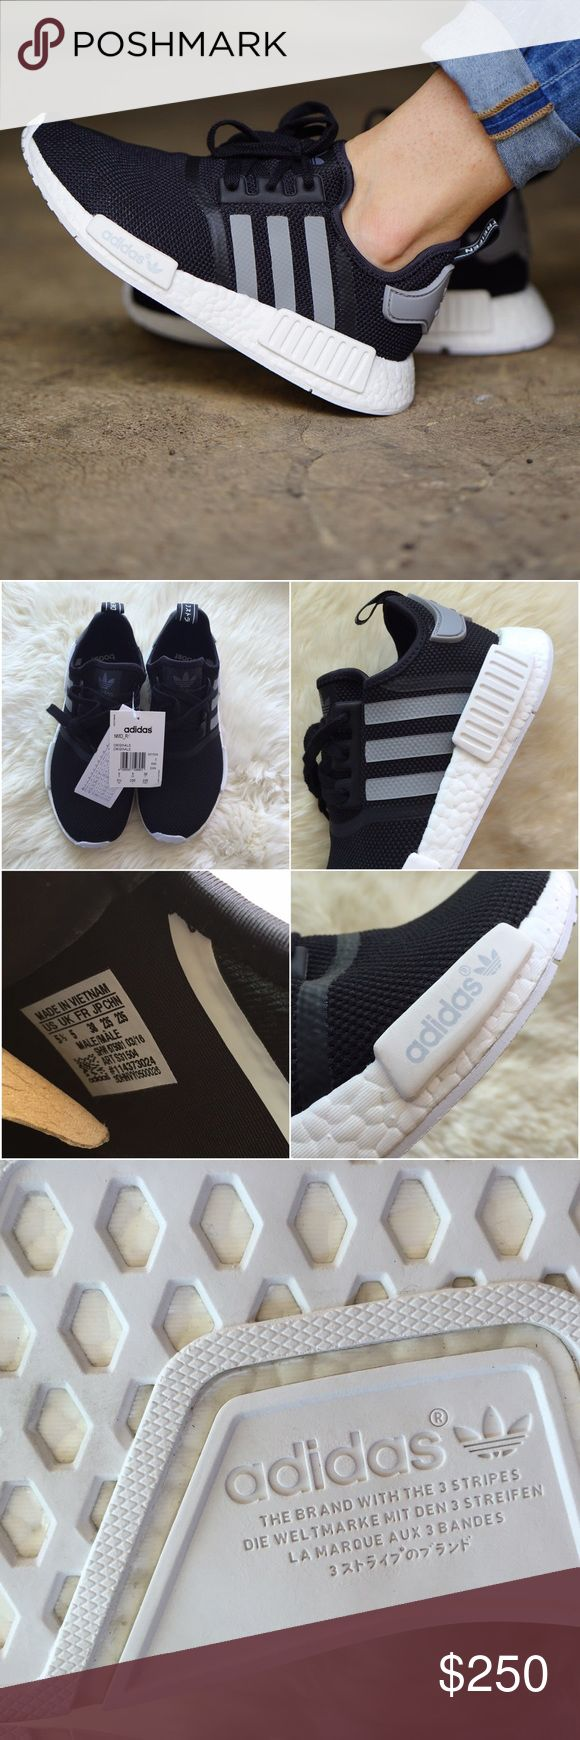 Adidas NMD R1 Monochrome Solar Red Shoes for sale in Johor